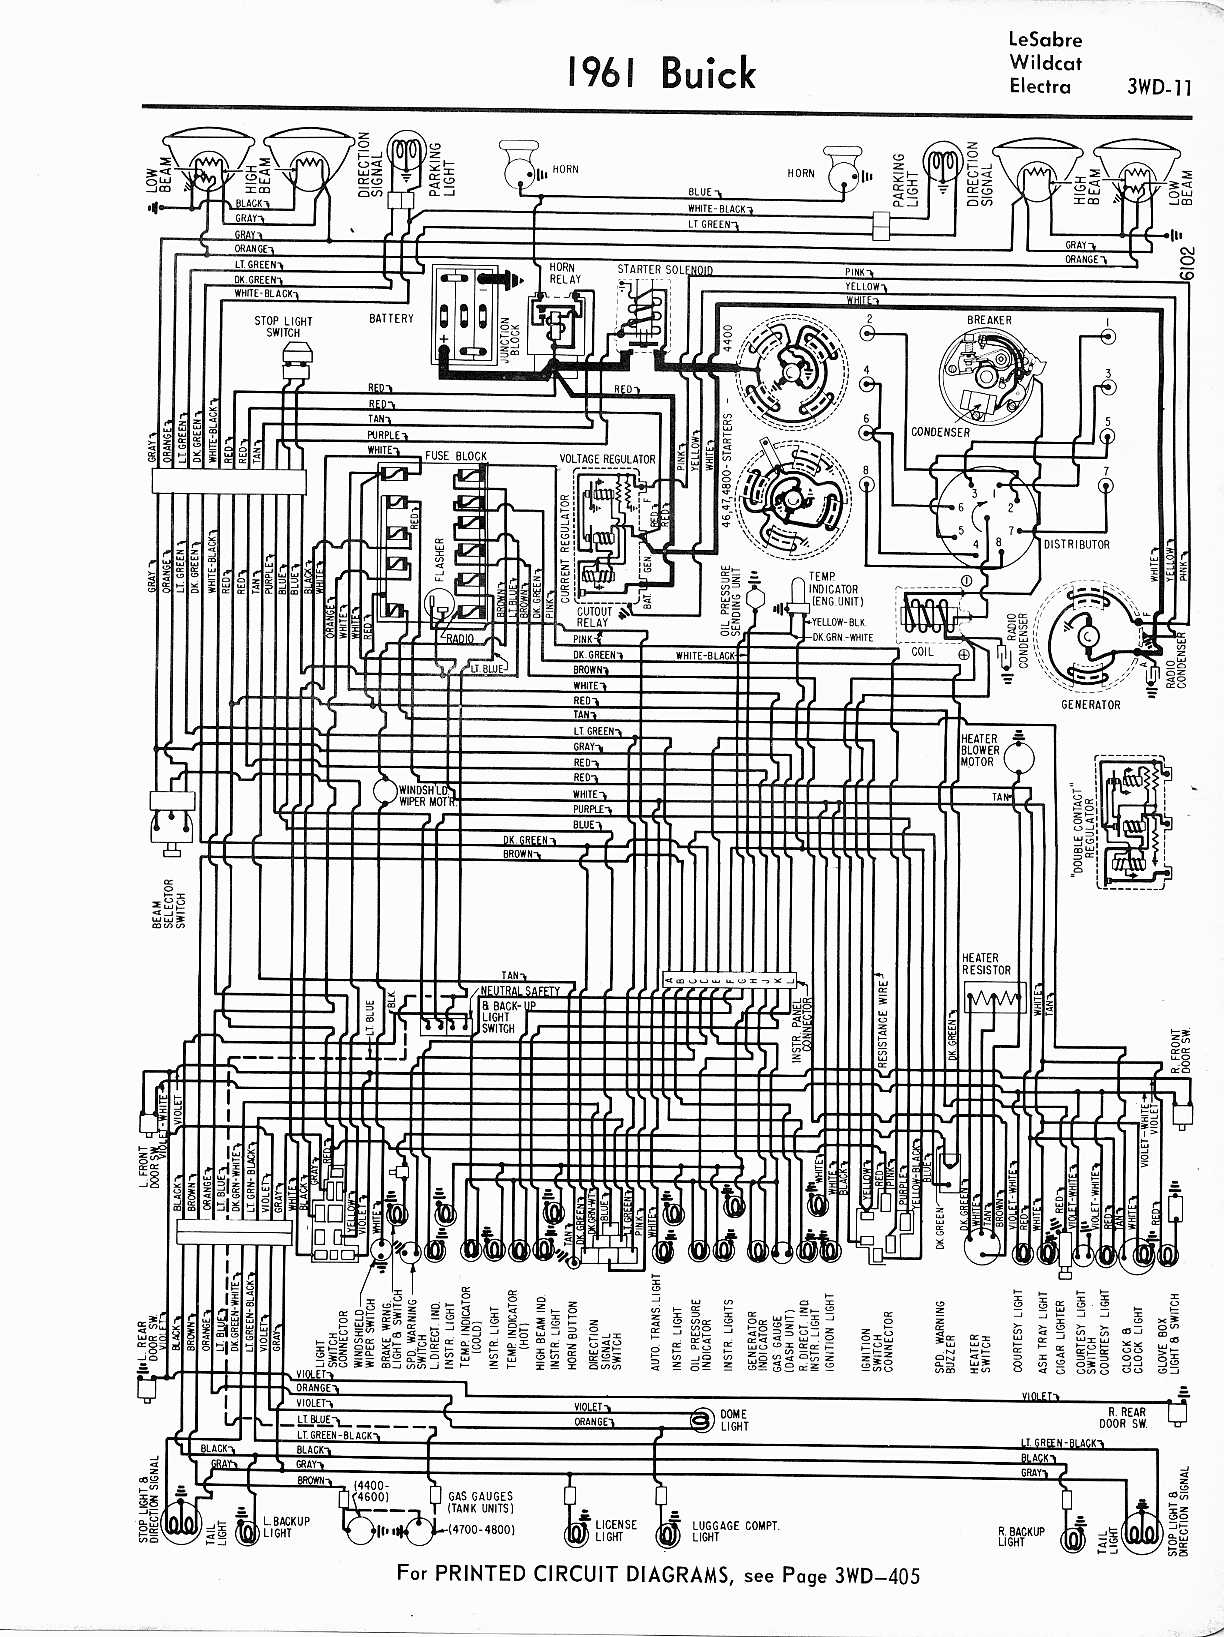 MWireBuic65_3WD 011 buick lesabre fuse box diagram wiring diagram simonand 1999 buick century fuse box diagram at n-0.co